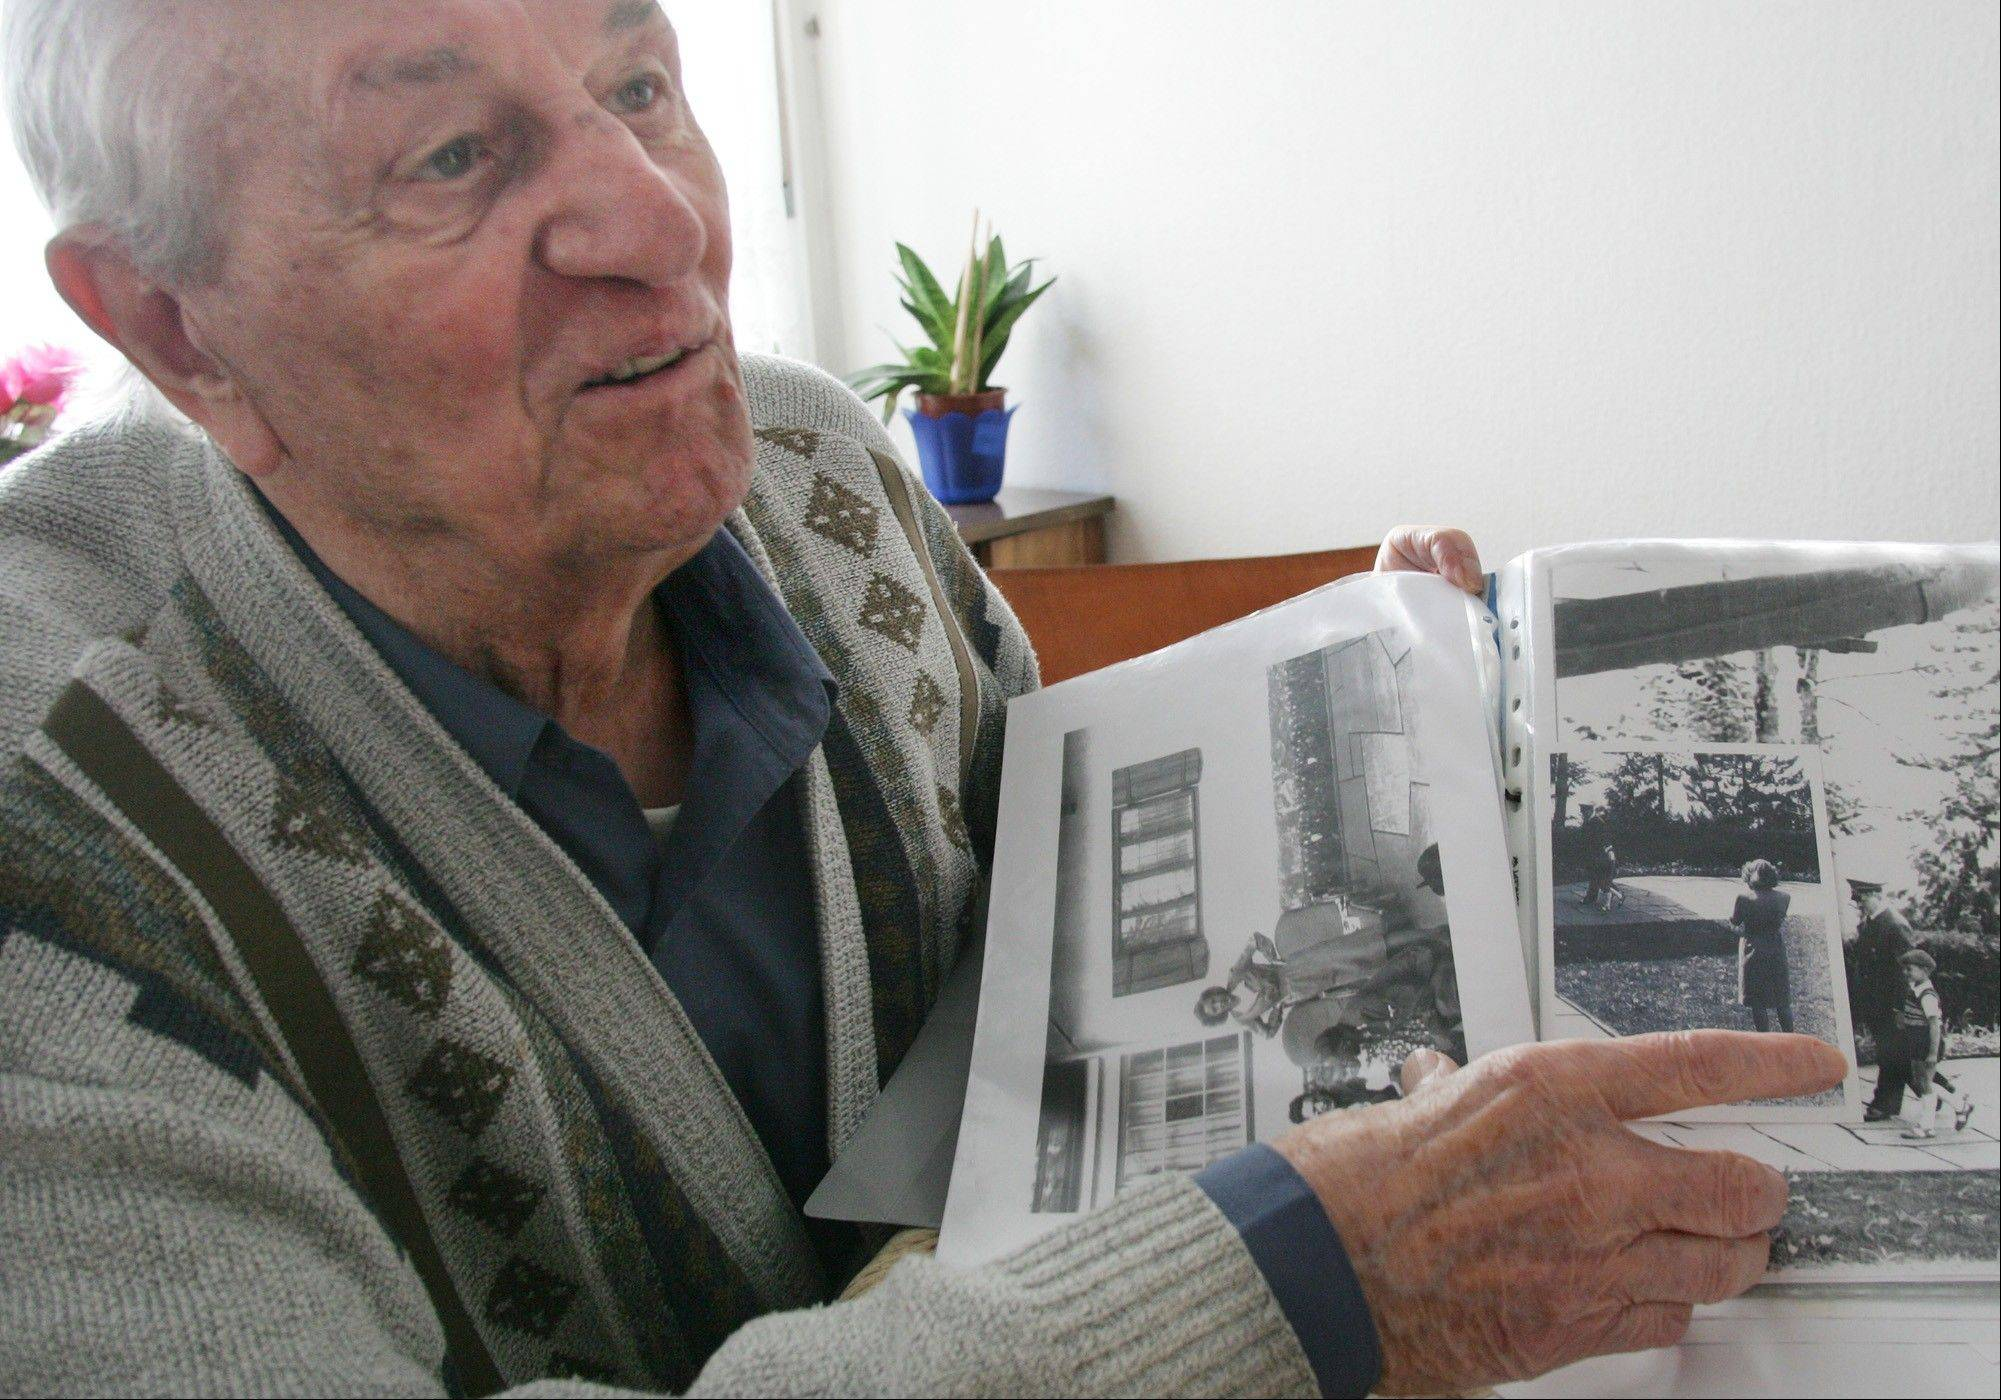 Hitler's bodyguard Rochus Misch, who was the last remaining witness to the Nazi leader's final hours in his Berlin bunker, died Thursday, Sept. 5, 2013. He was 96.